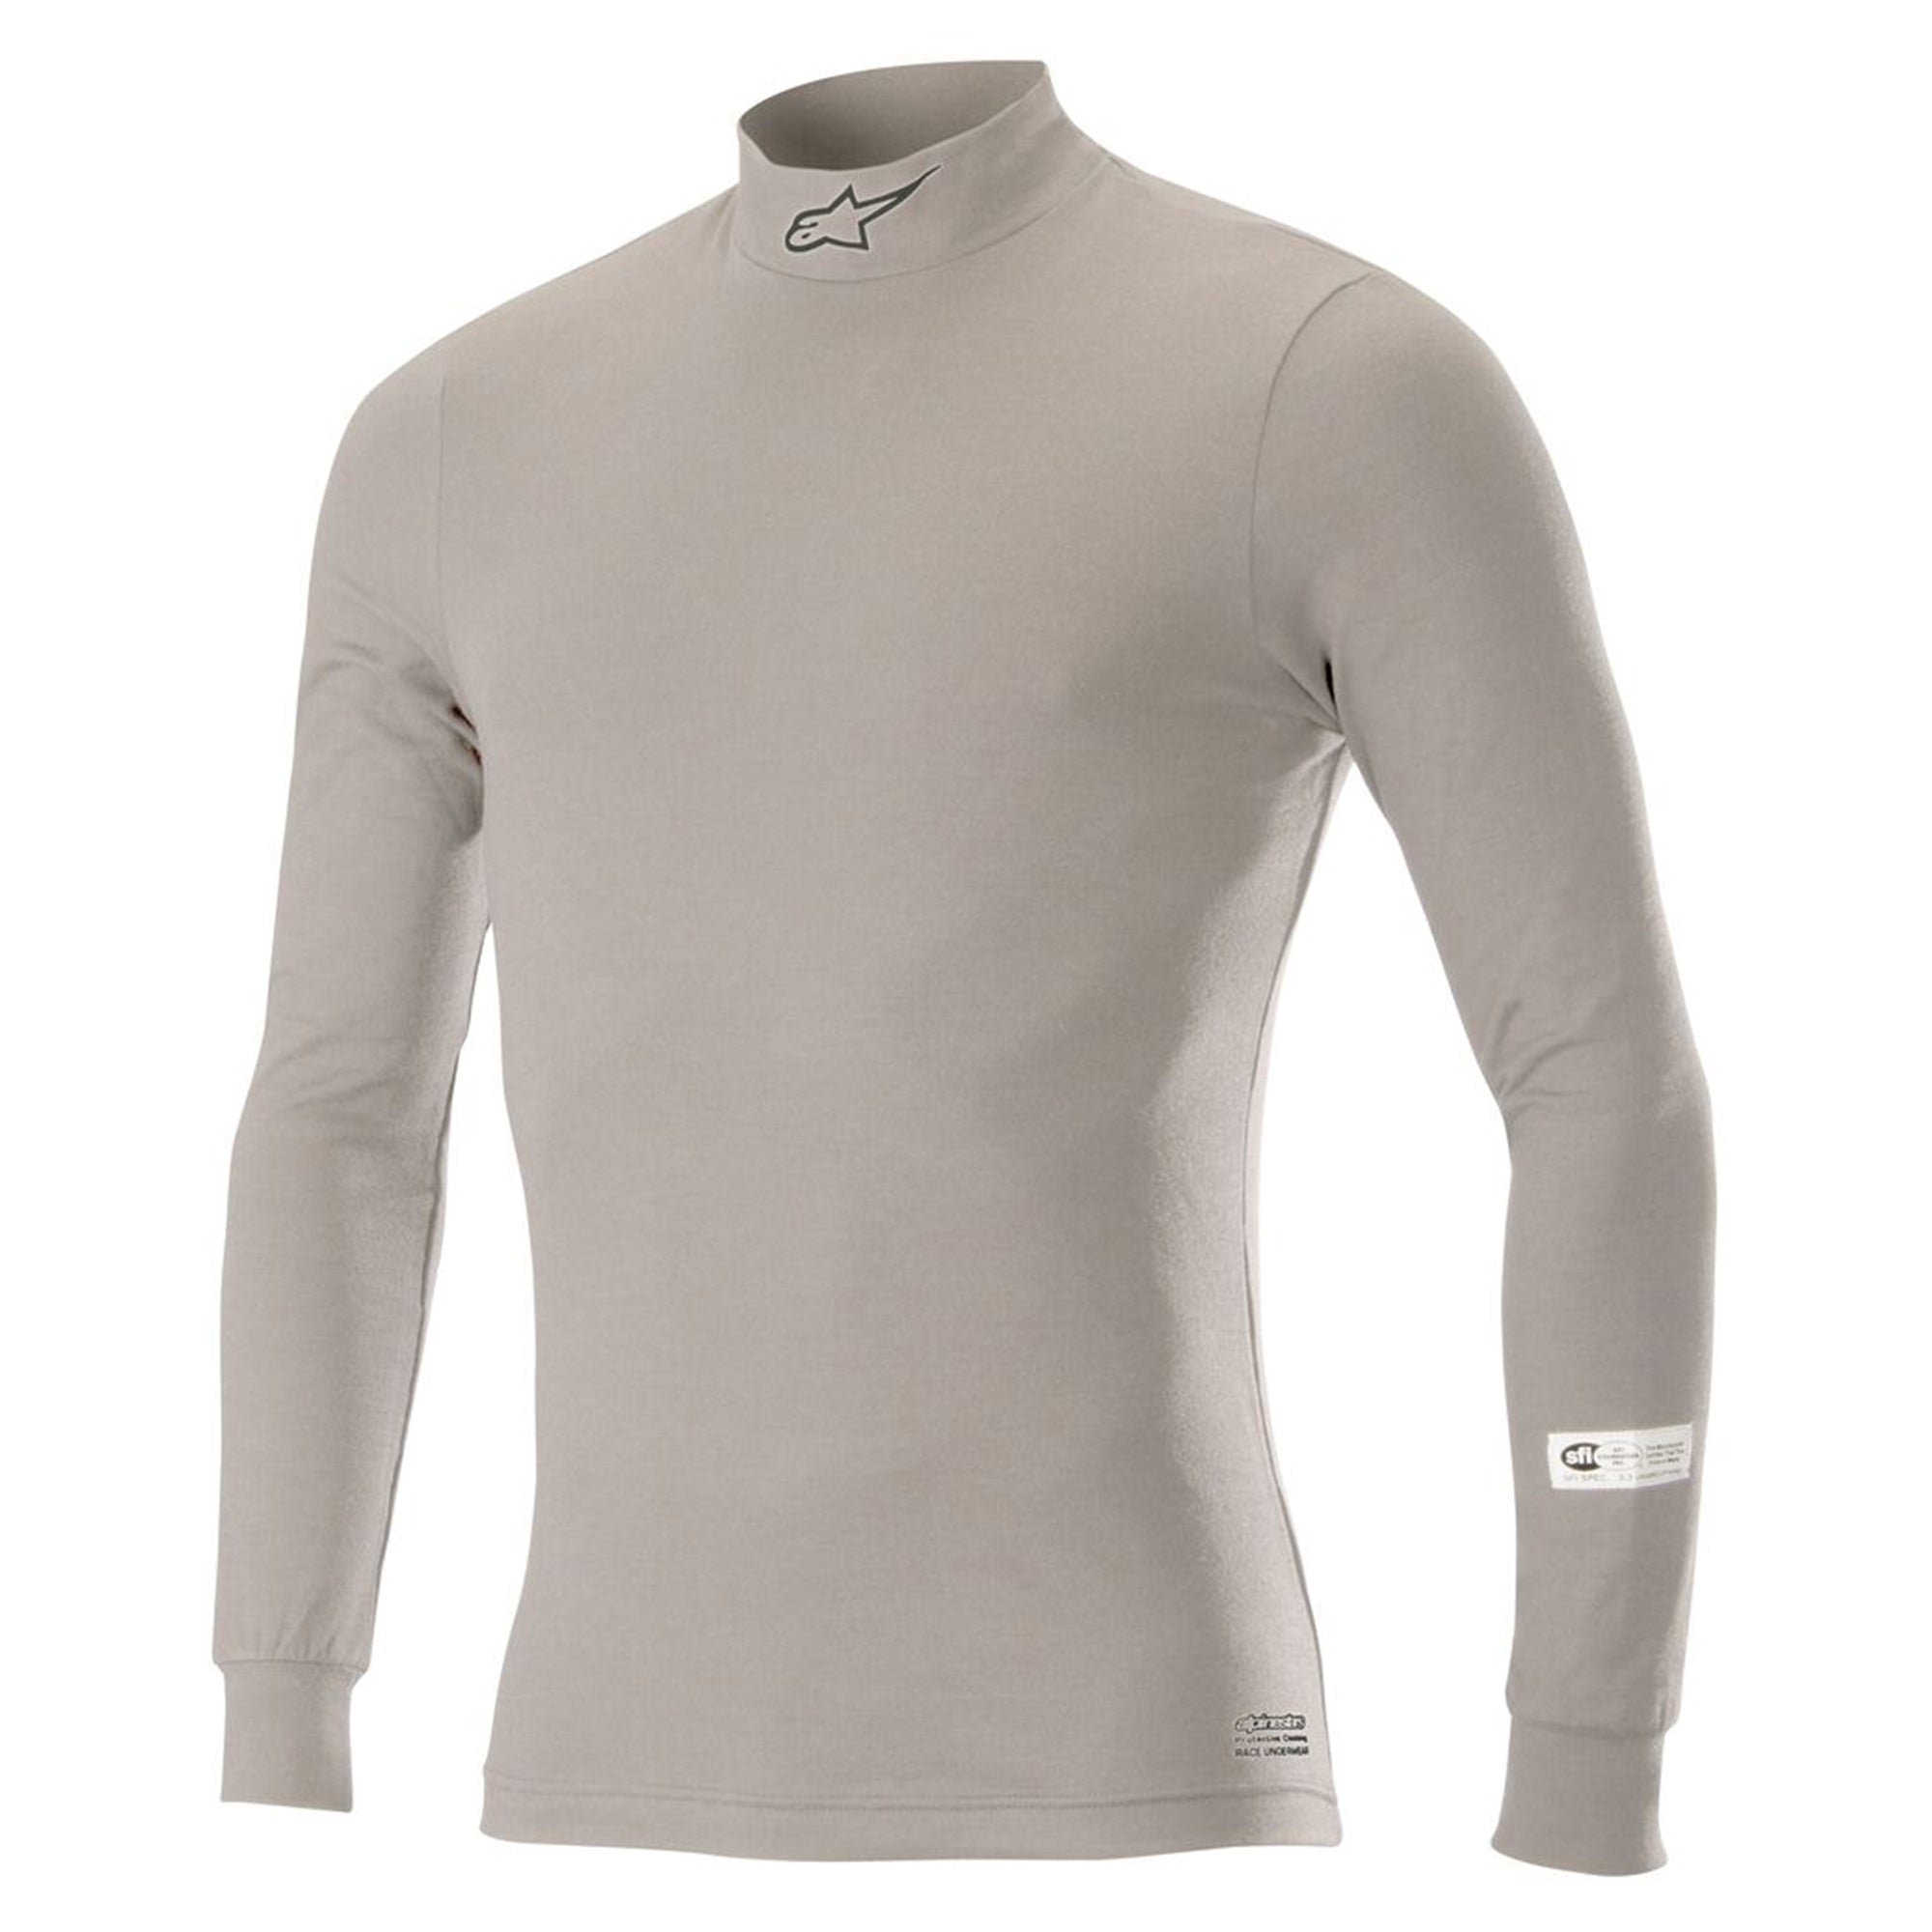 Race V2 Long Sleeve Top